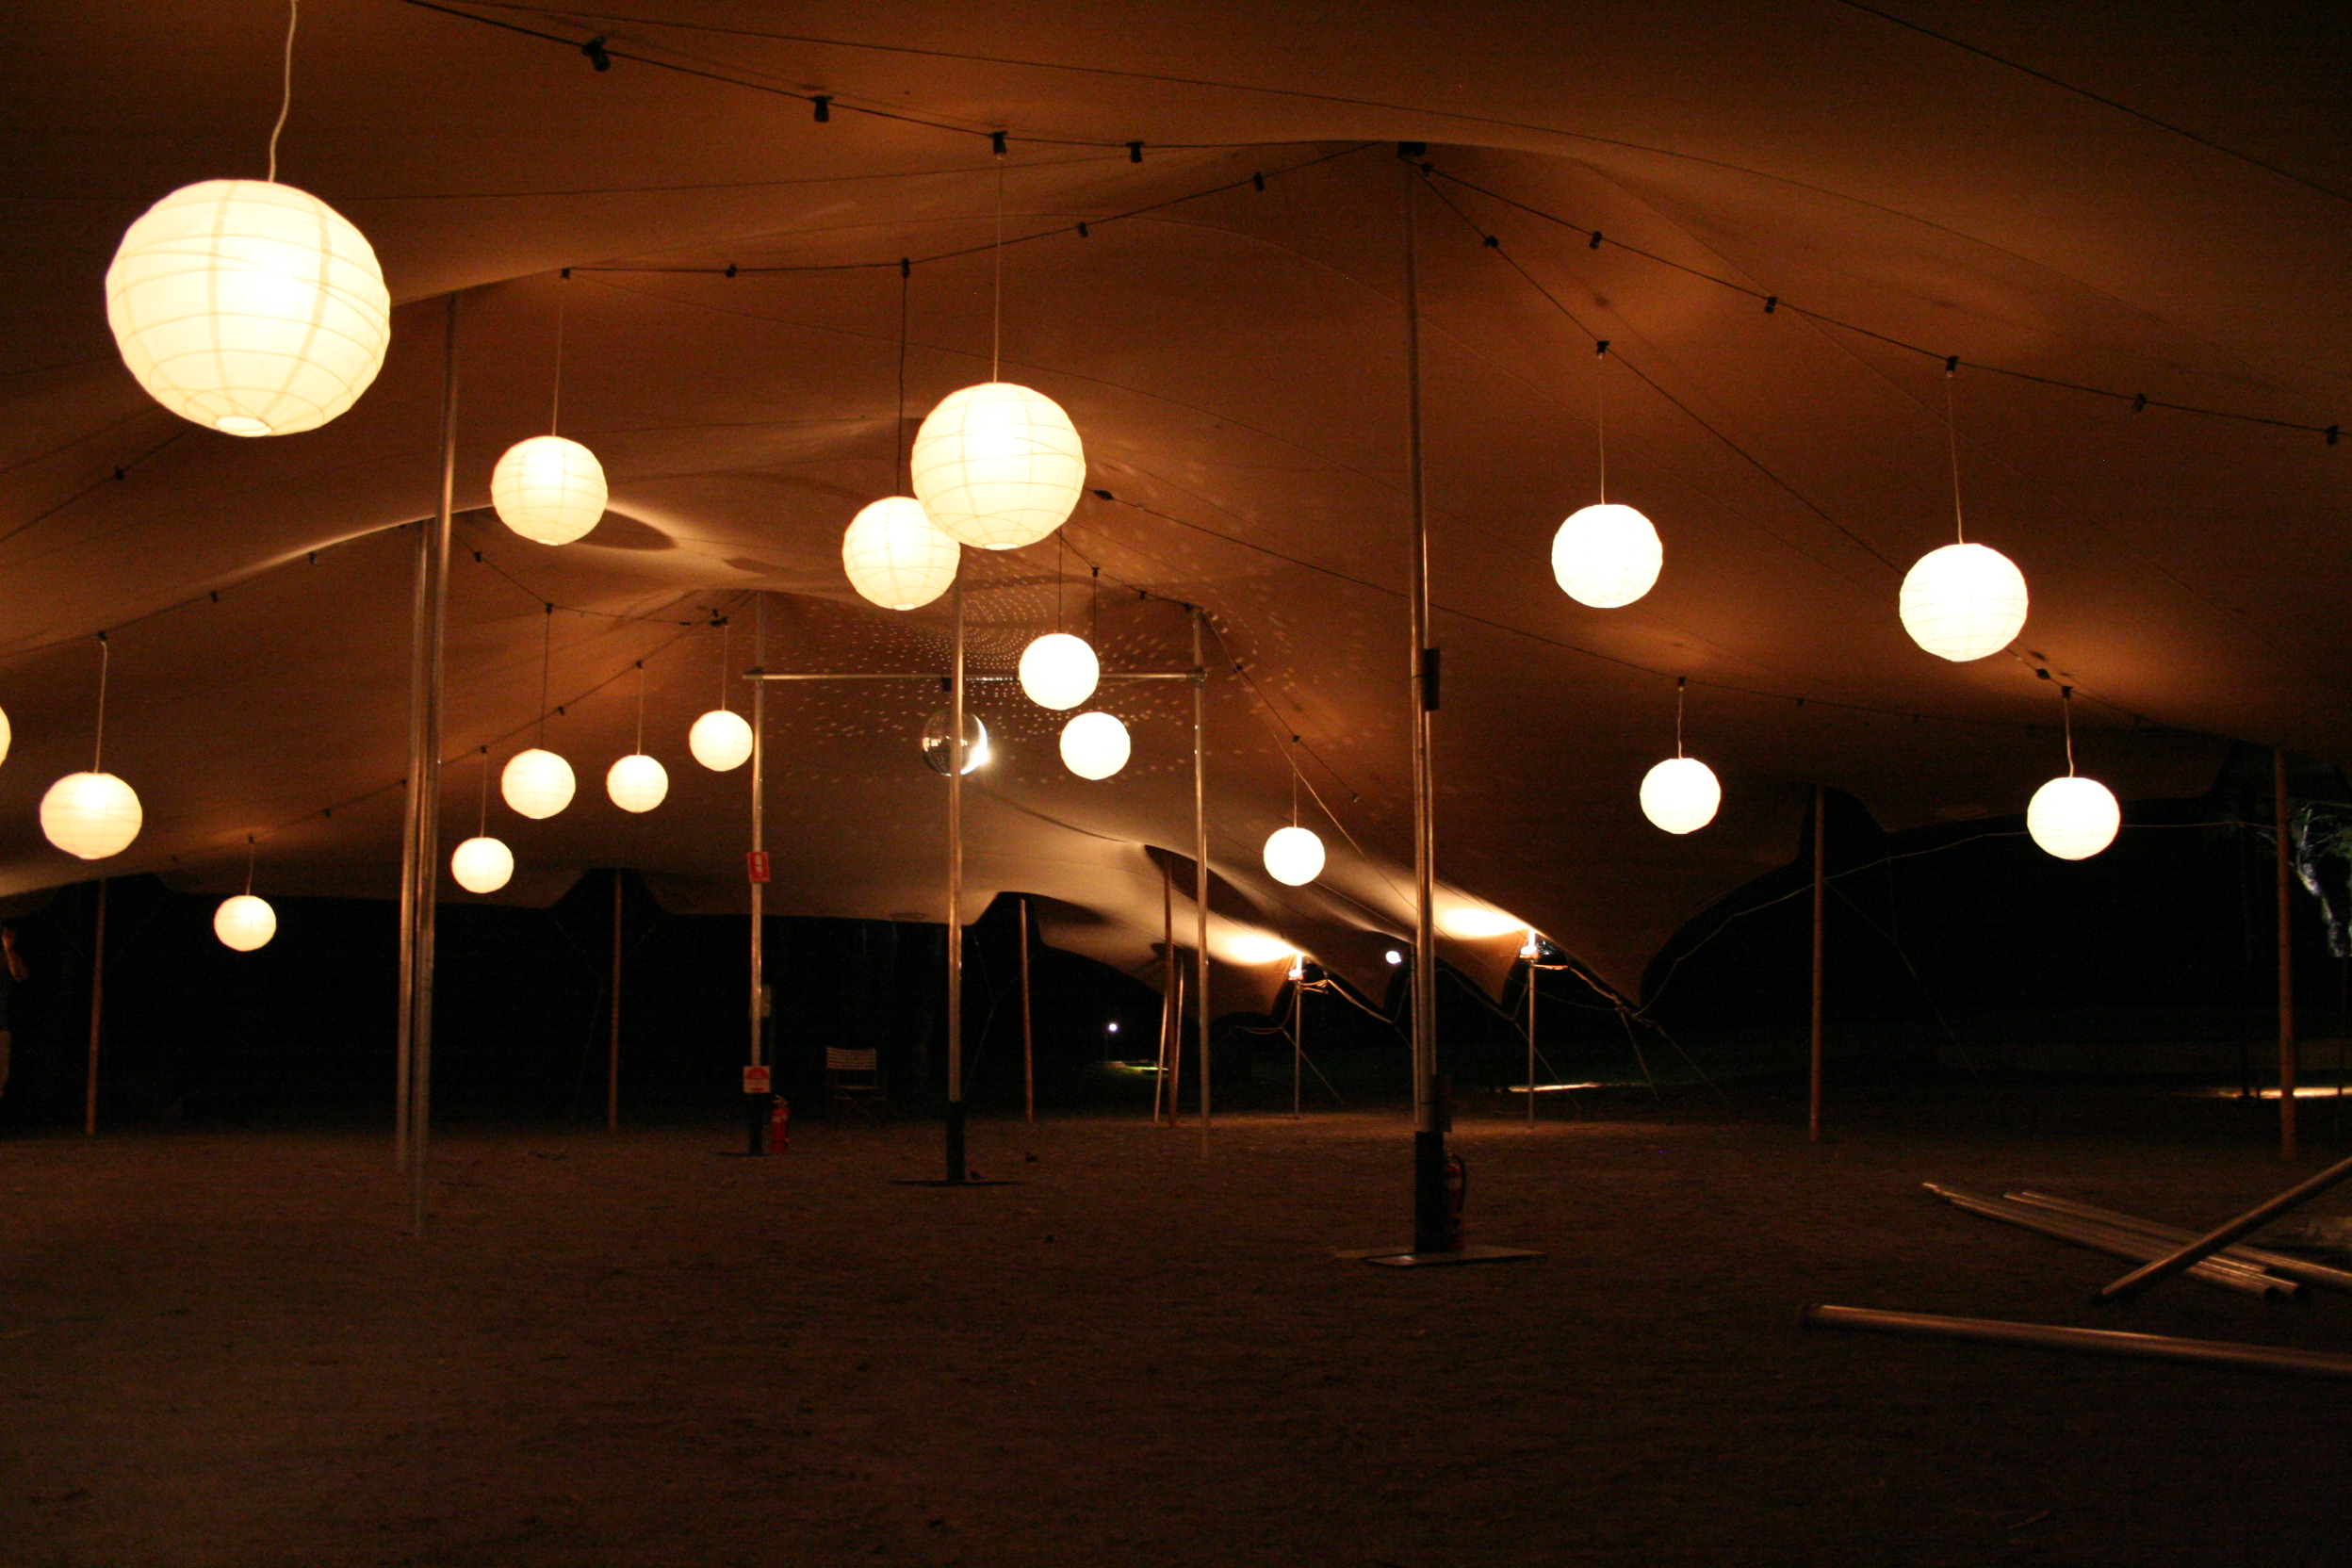 Bedouin Stretch Tent with lights & Stretch Tents u0026 Marquee Hire Cairns - Nomadic Tents Australia